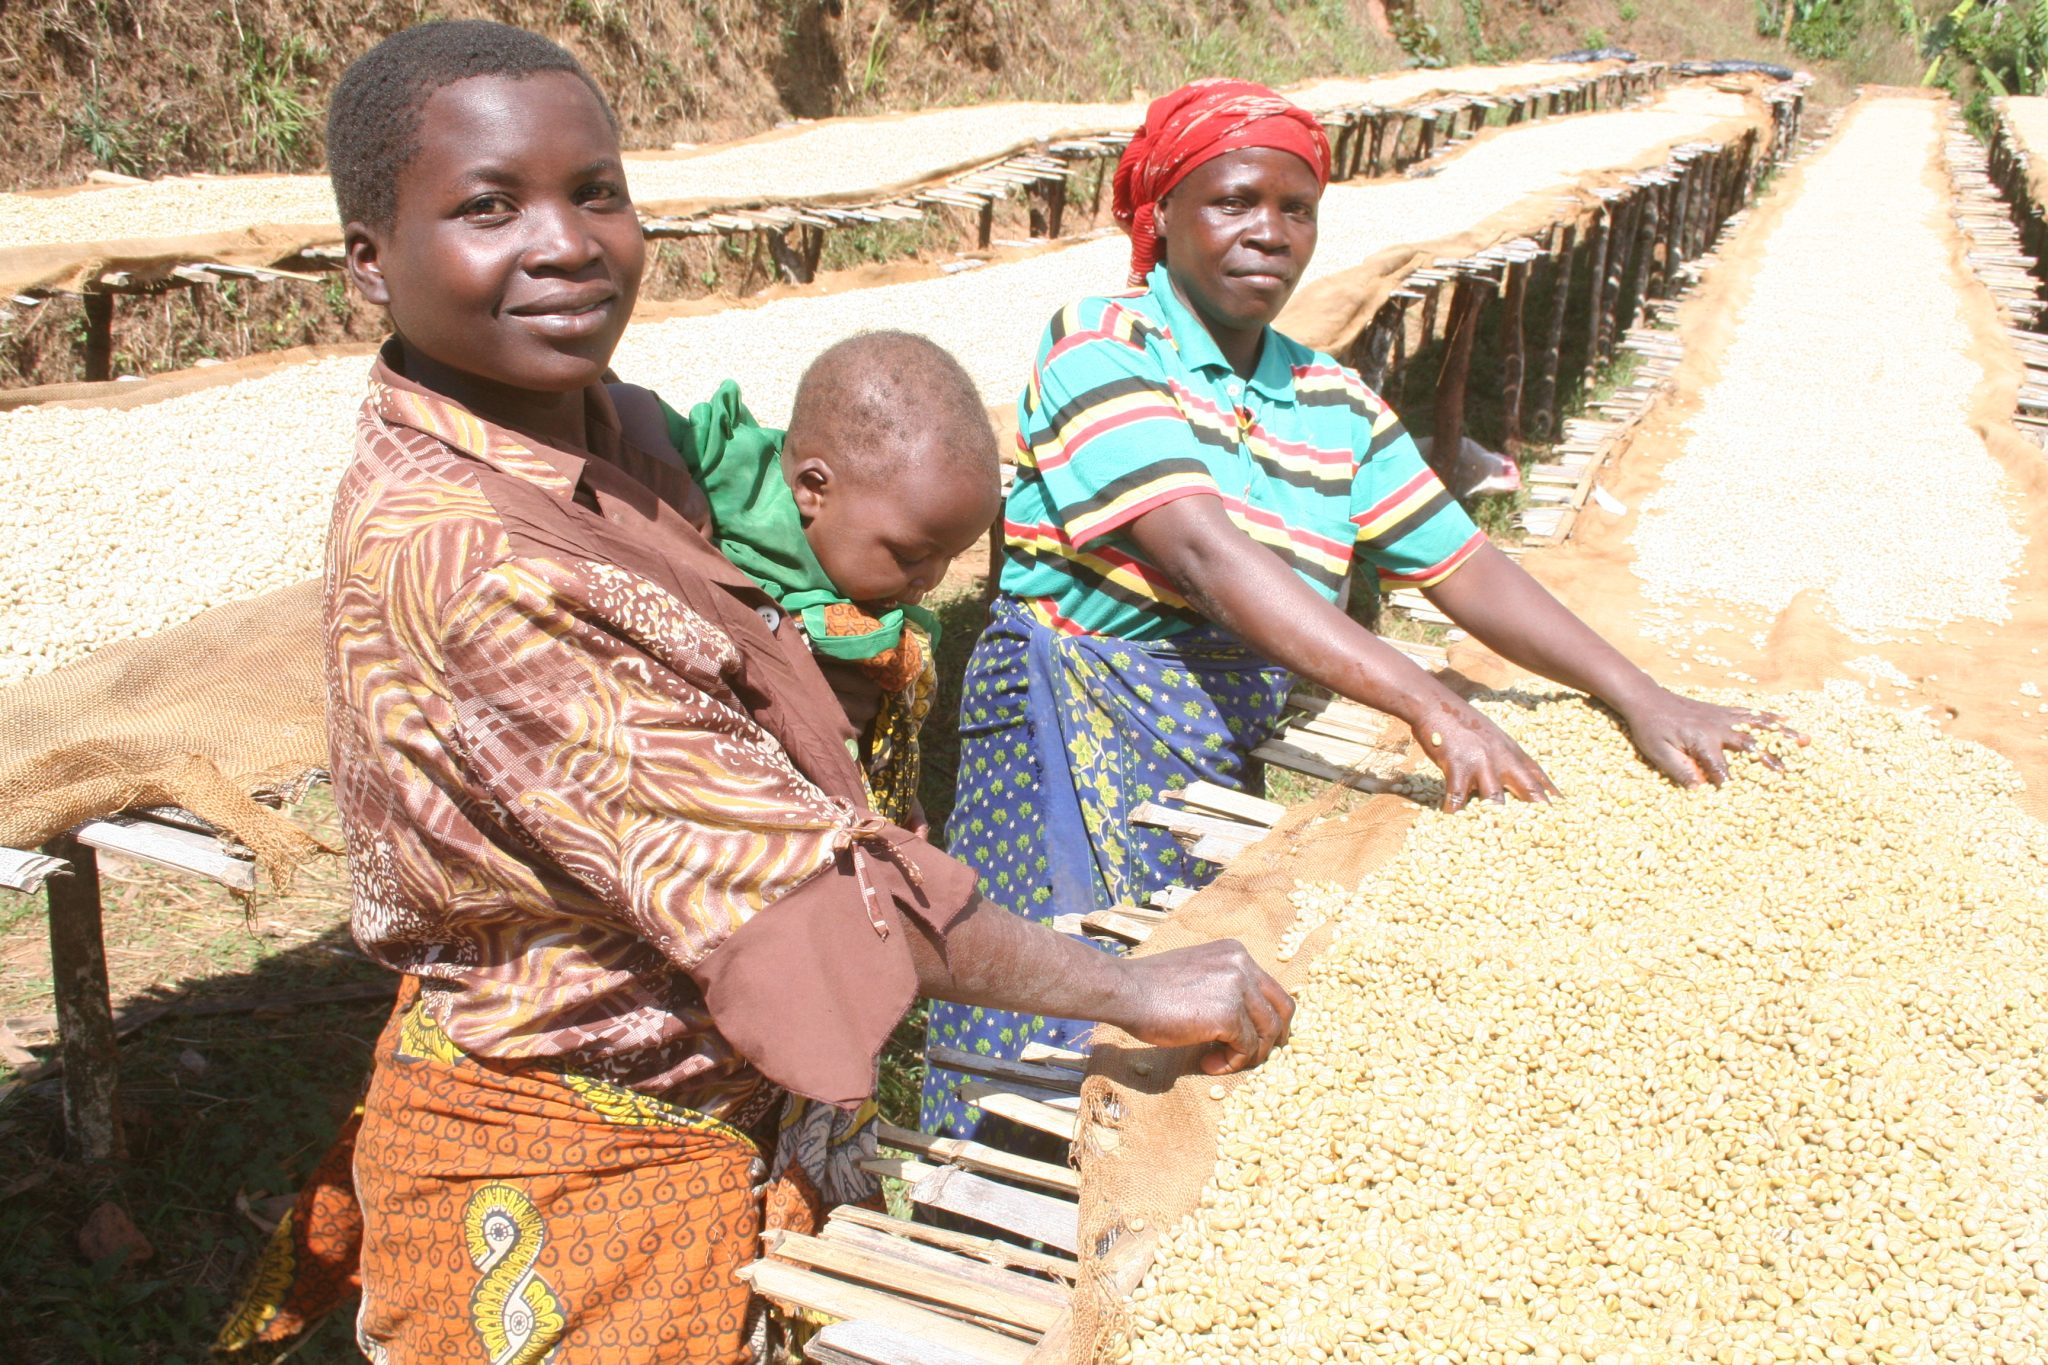 Received  help  from  Matthew  Algie  to  kickstart  a social  enterprise  selling  Malawian  mzuzu  coffee